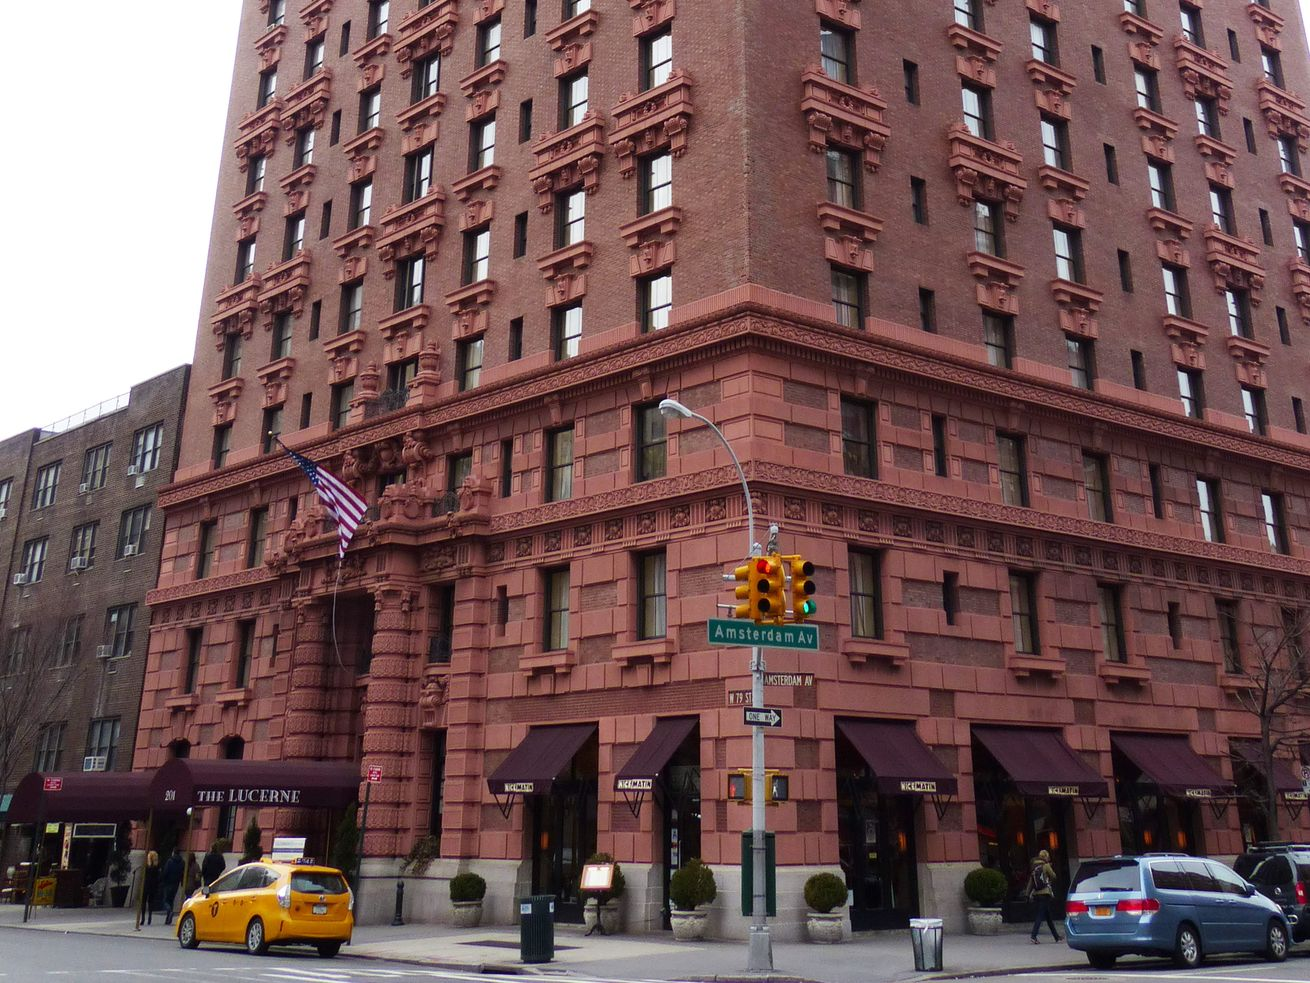 The Lucerne Hotel, a terra cotta building on the corner of Amsterdam Avenue and West 79th Street on Manhattan's Upper West Side.